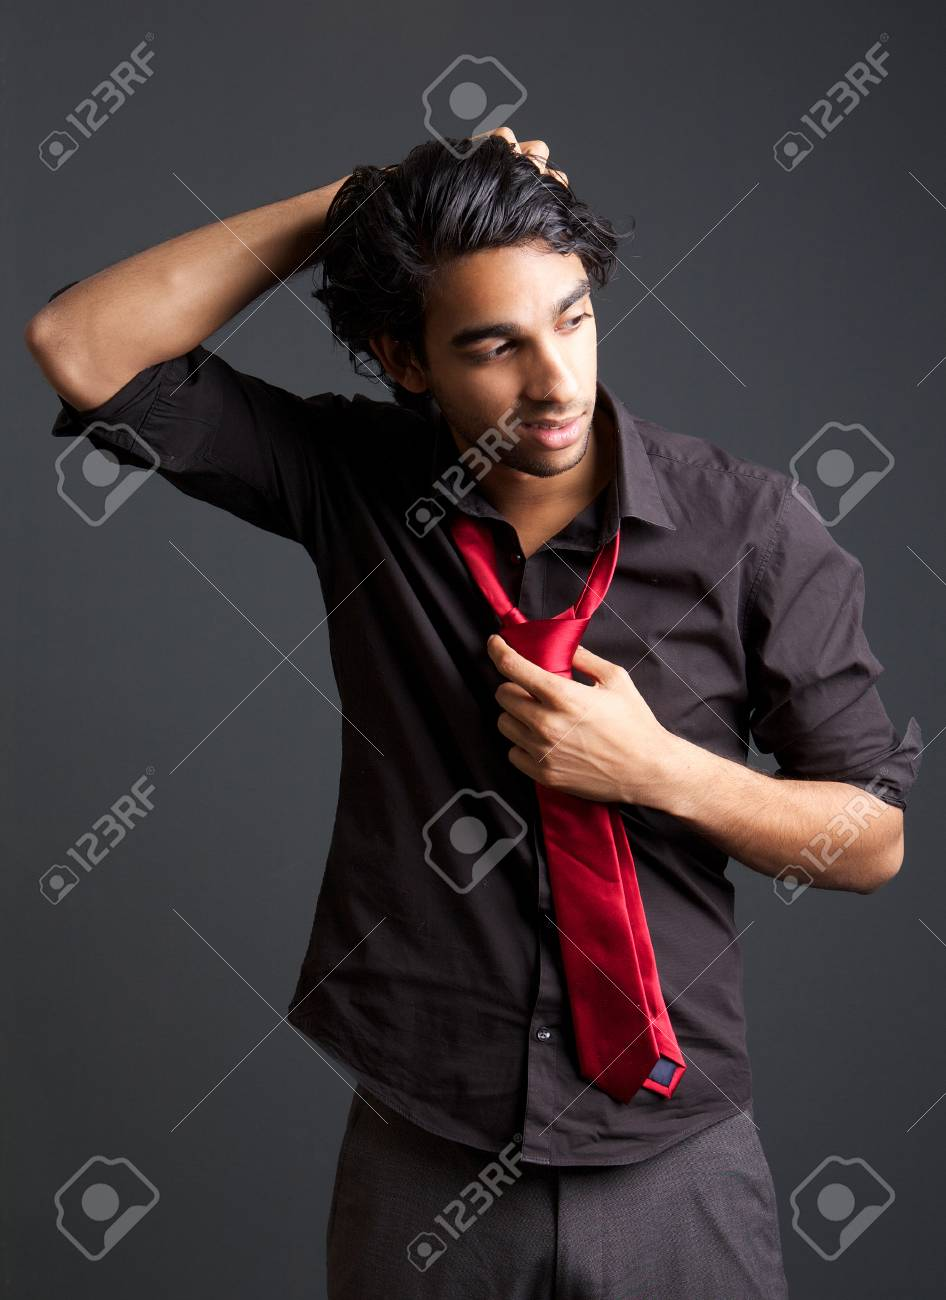 56cc3a0a6458 Portrait of a young man with black shirt and red tie posing with hand in  hair